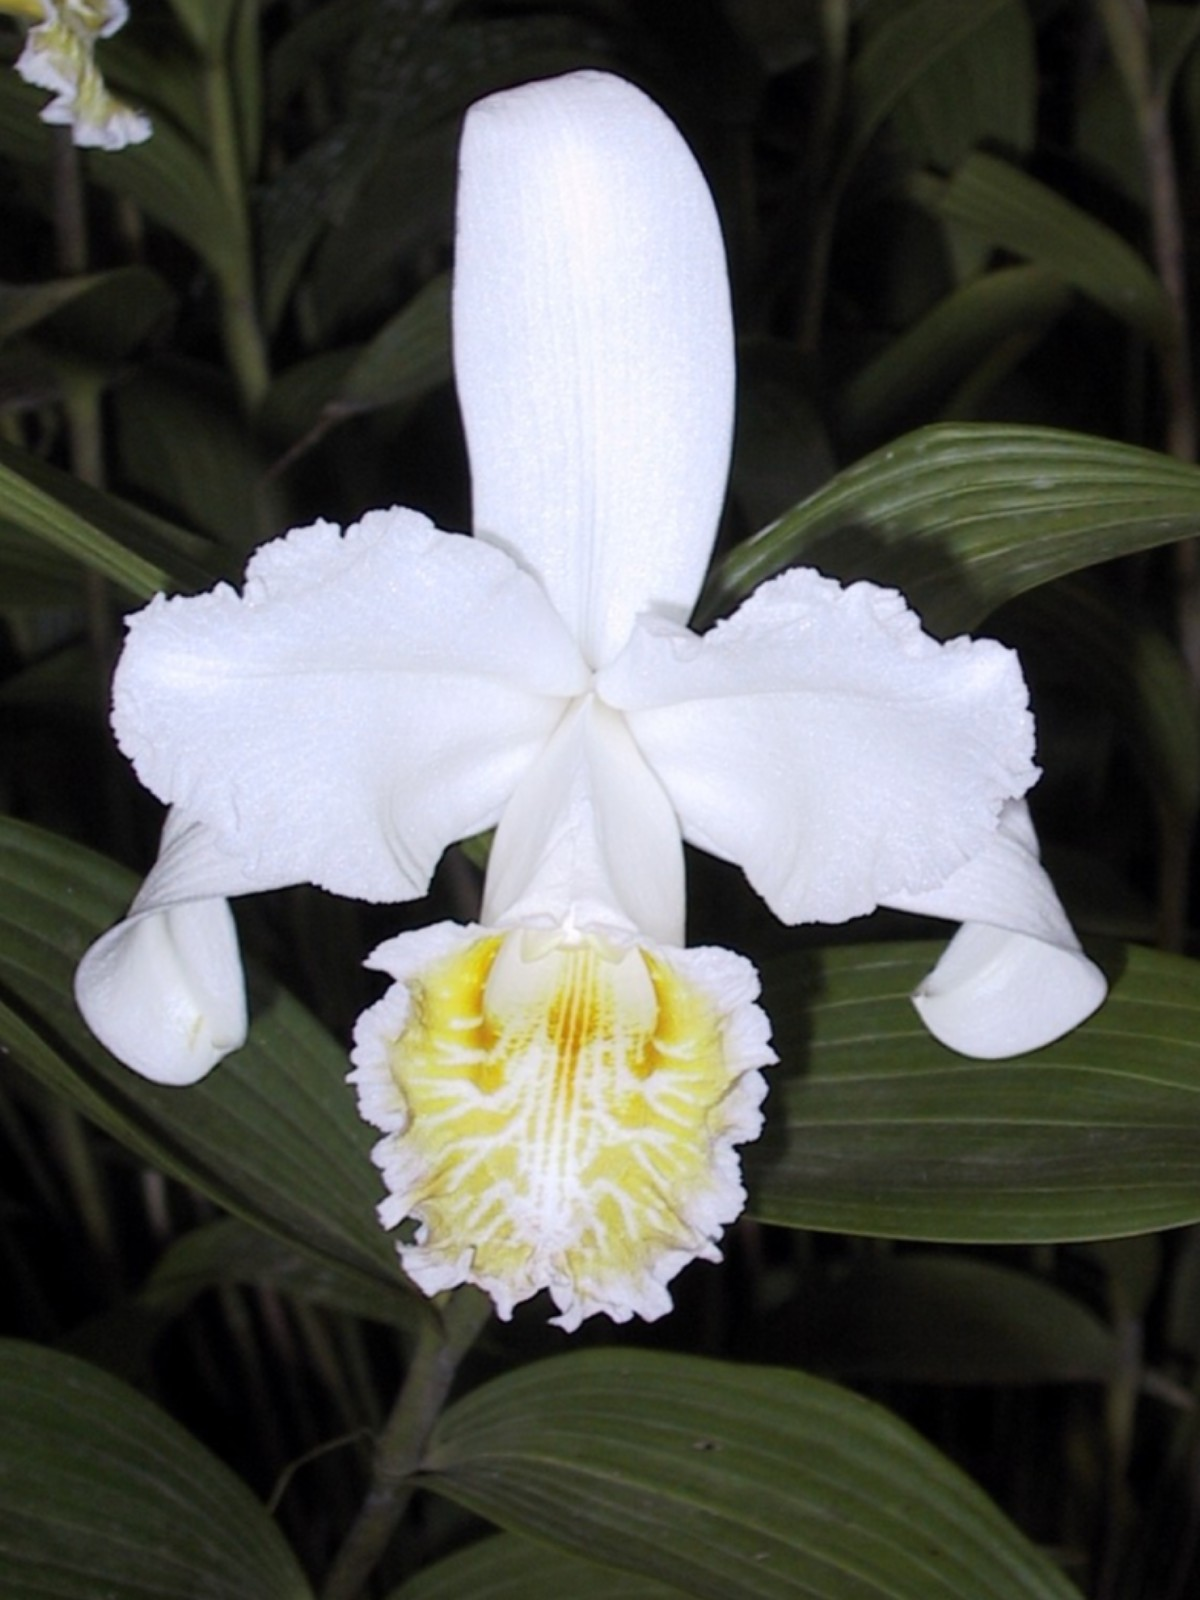 Sobralia at Costa Rica show, spring 2002